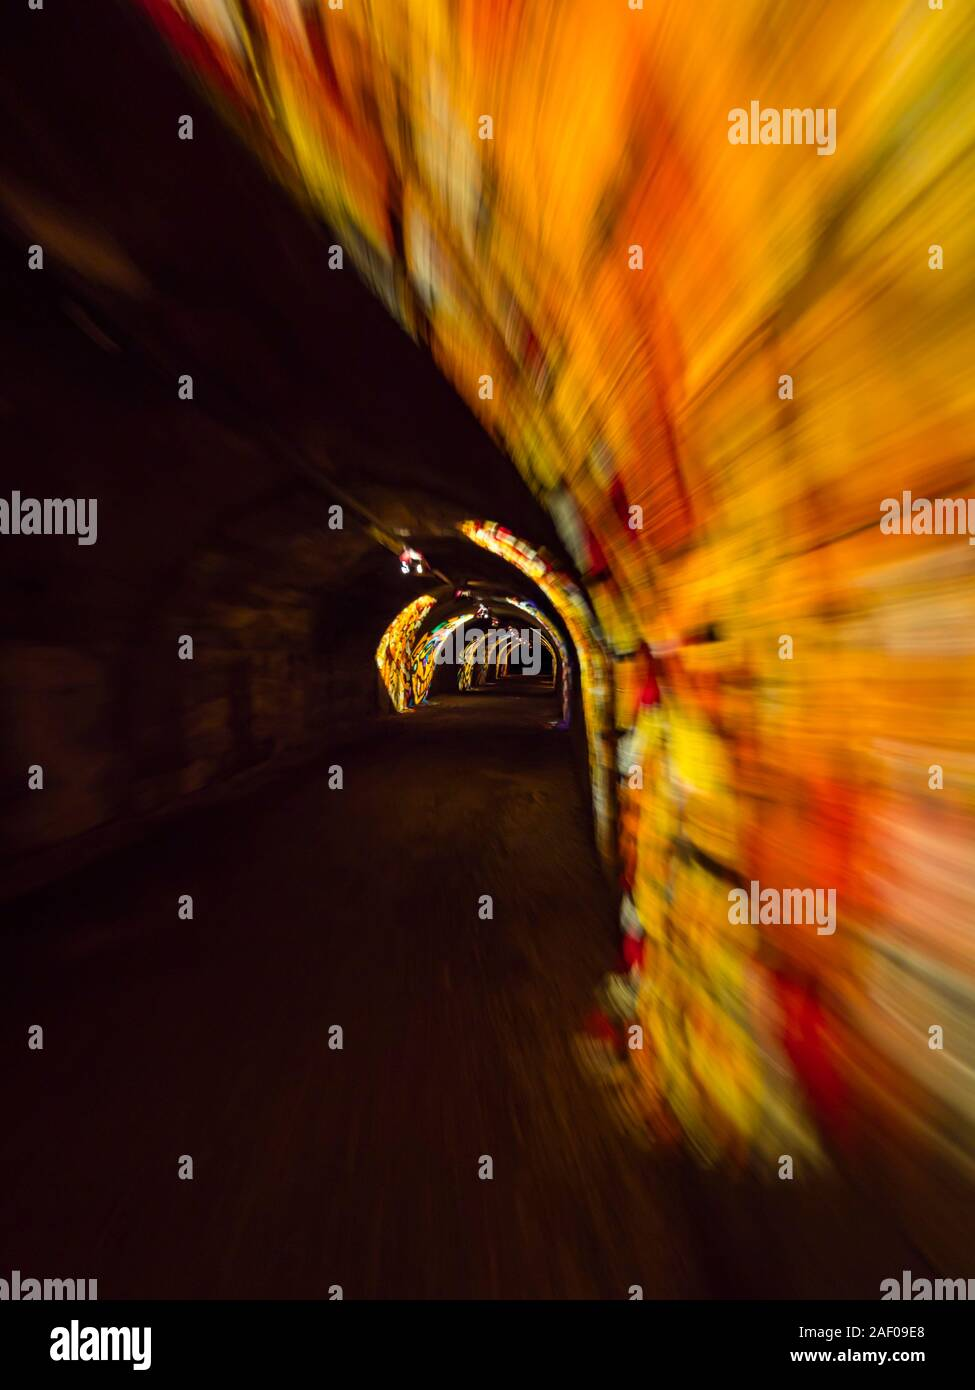 Underground tunnel under Rijeka in Croatia lighted illuminated for festivity Stock Photo